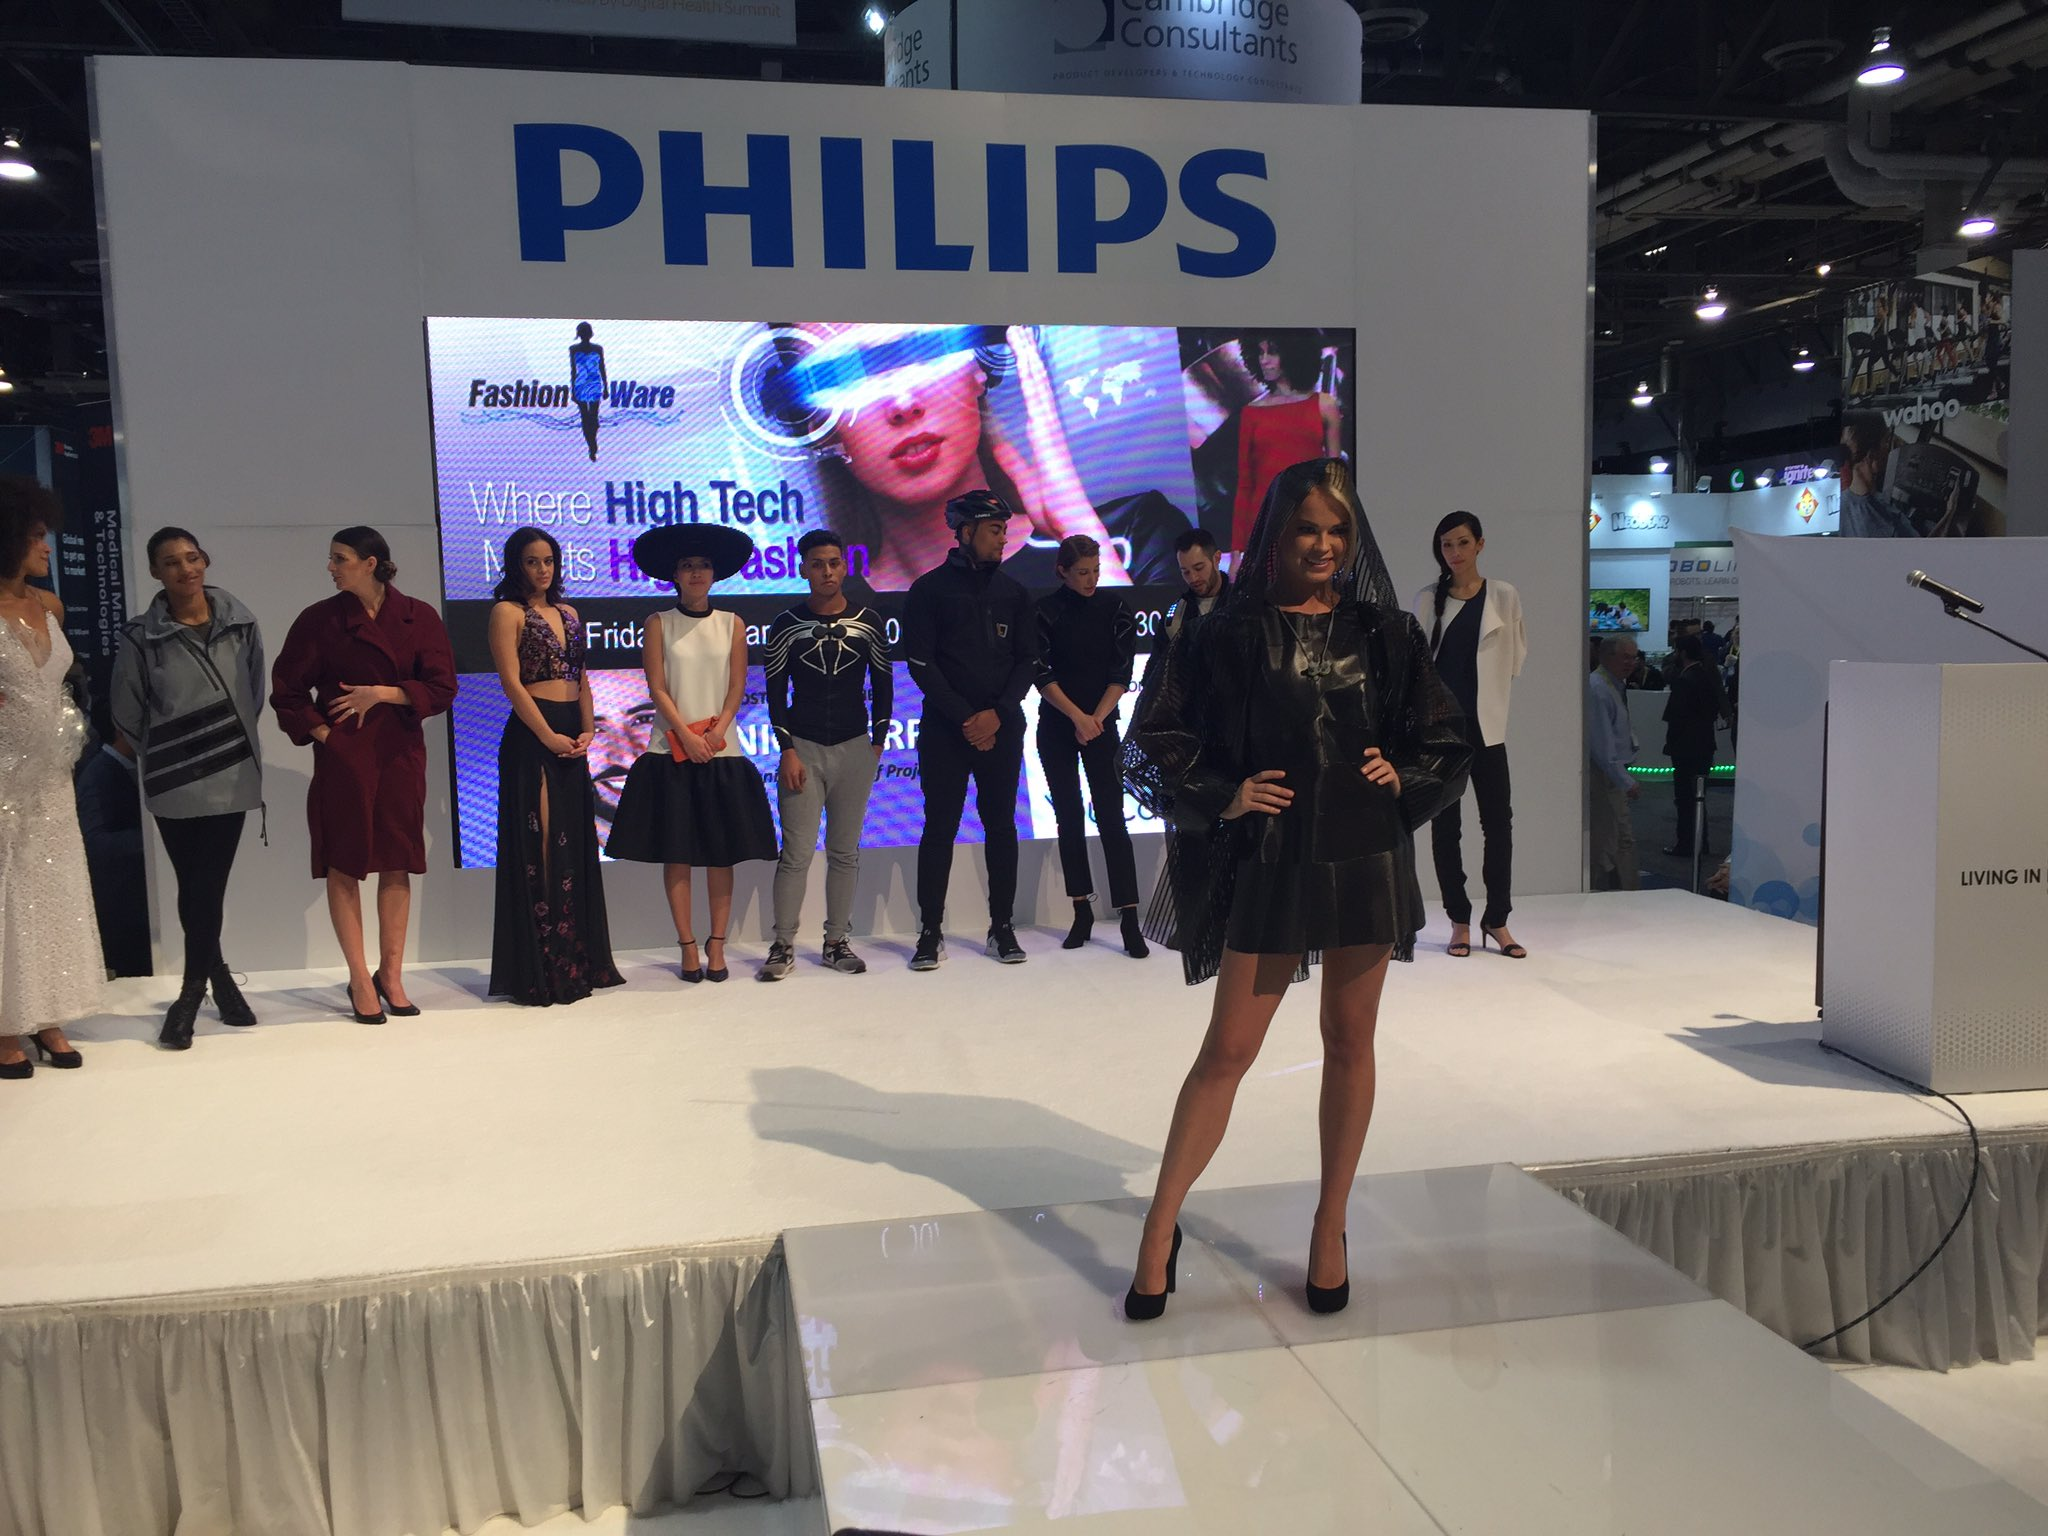 #CES2017 @Philips is having a #FashionShow @SandsExpo @News3LV #News3CES #News3LV @johncolucci @NateNews3LV @LVCVA @CityOfLasVegas #LasVegas https://t.co/p7s92PsXlS